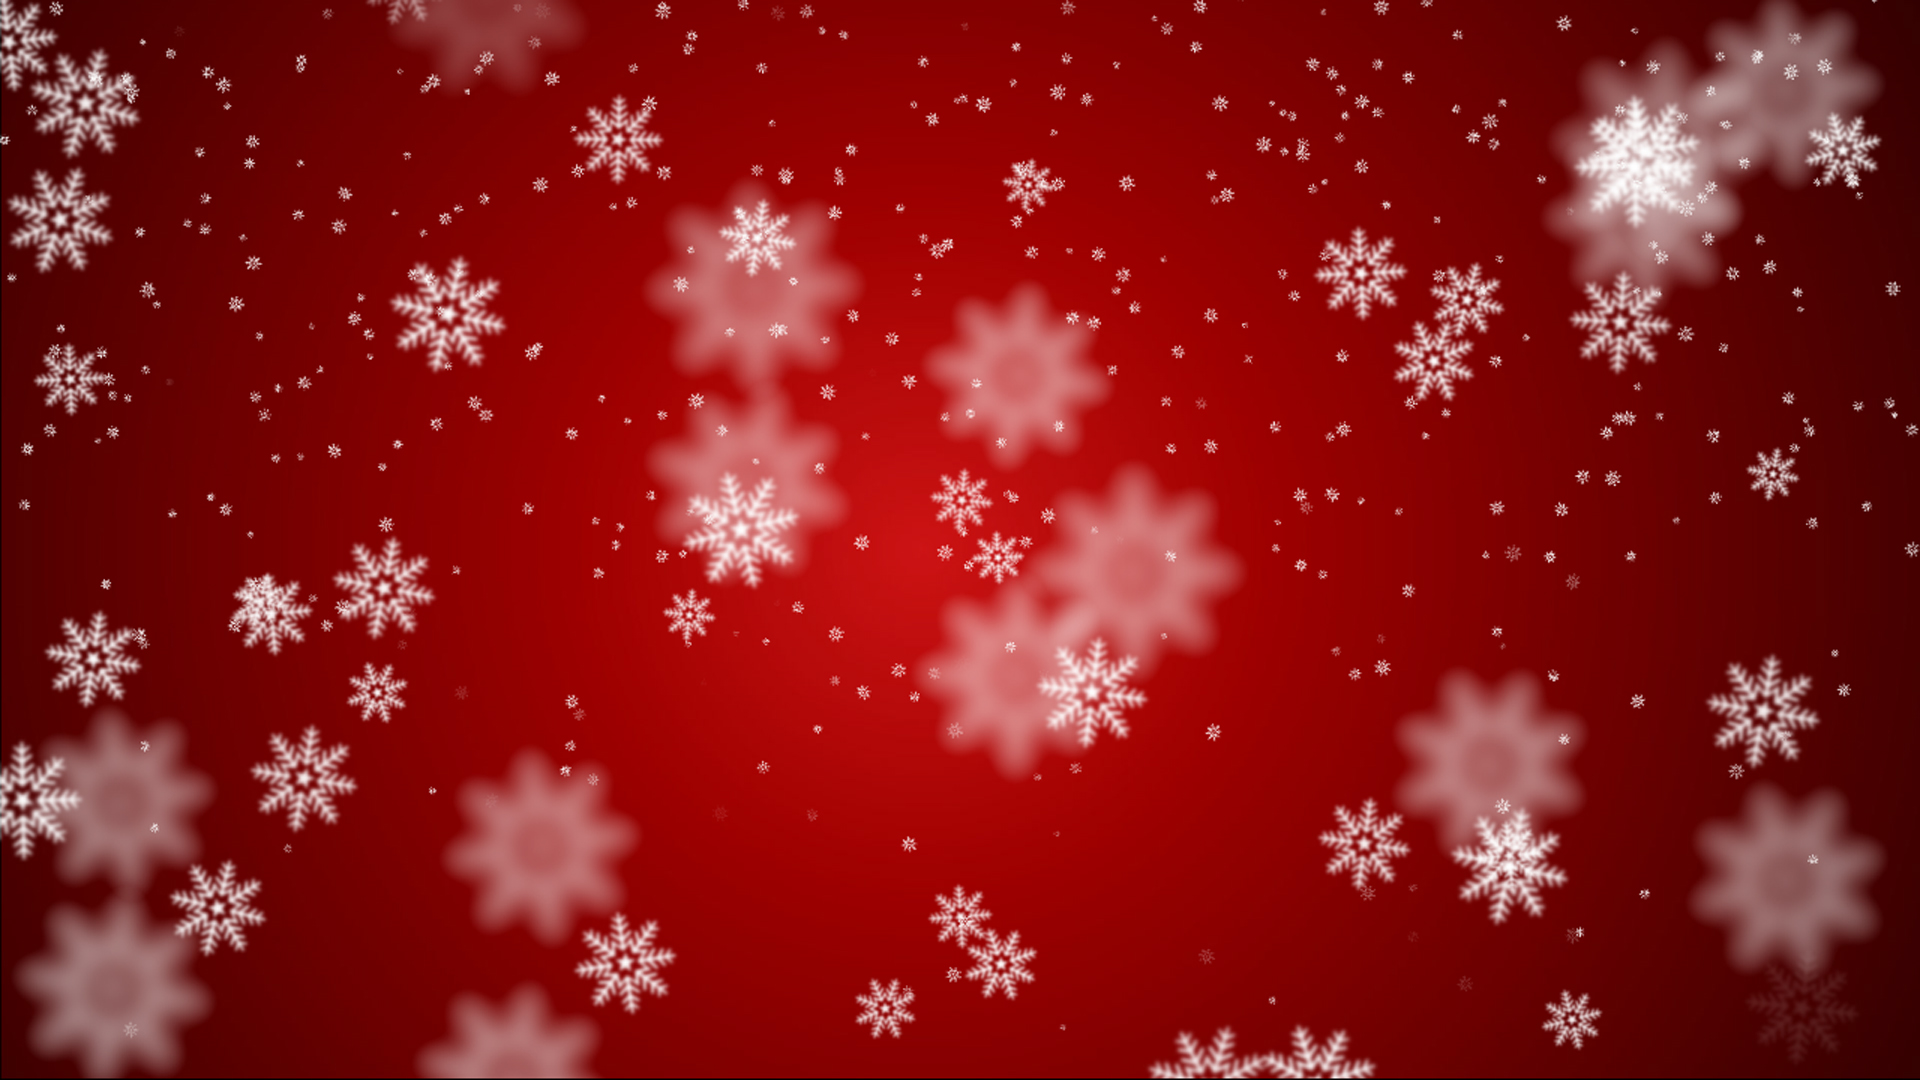 Red Christmas Background.Red Christmas Backgrounds Wallpaper 3 Wireless Warehouse